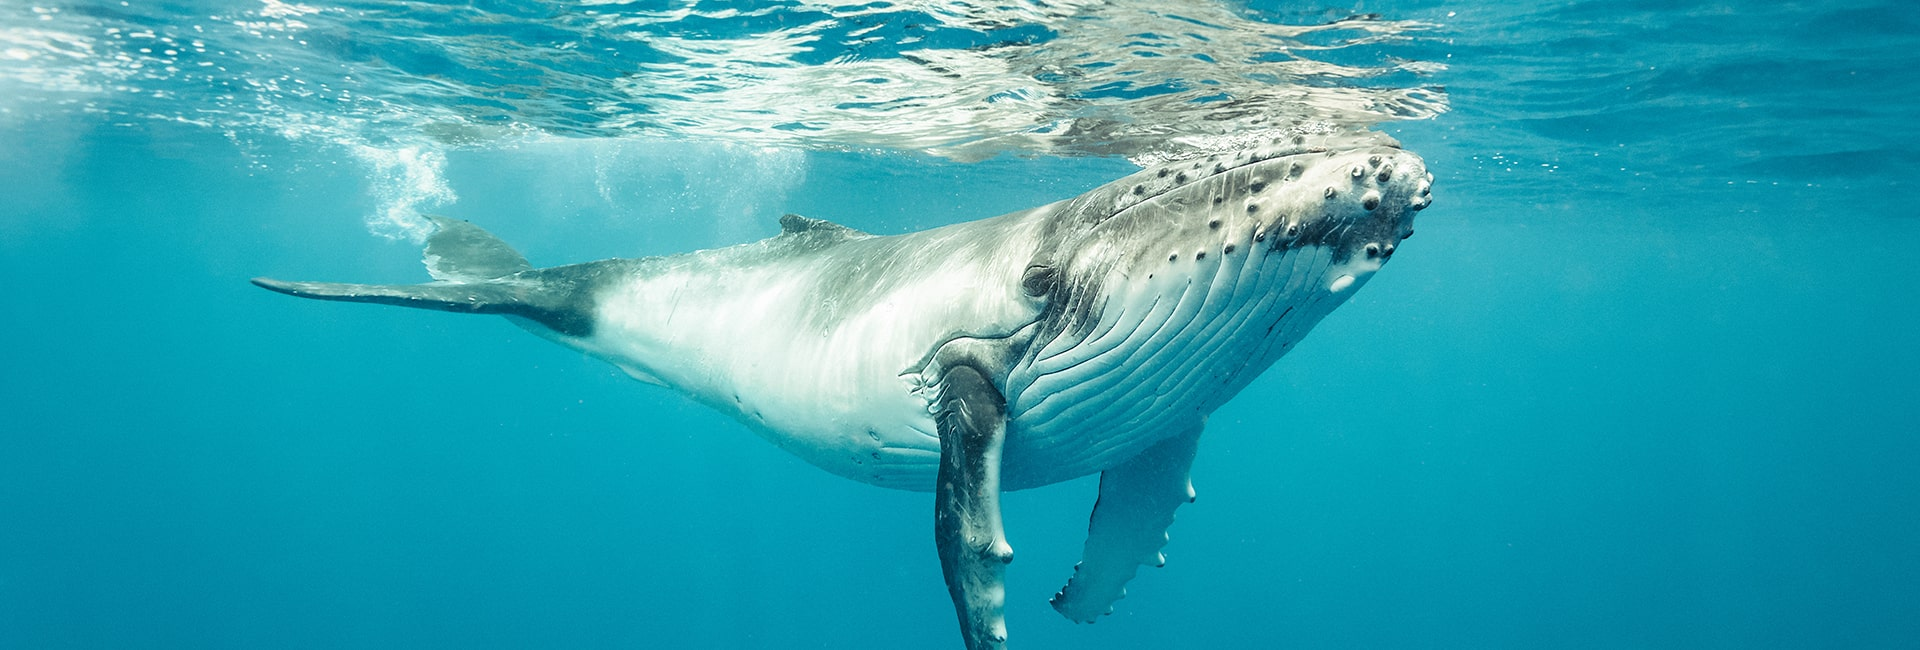 Best Time To See Whale Sharks In Cabo San Lucas